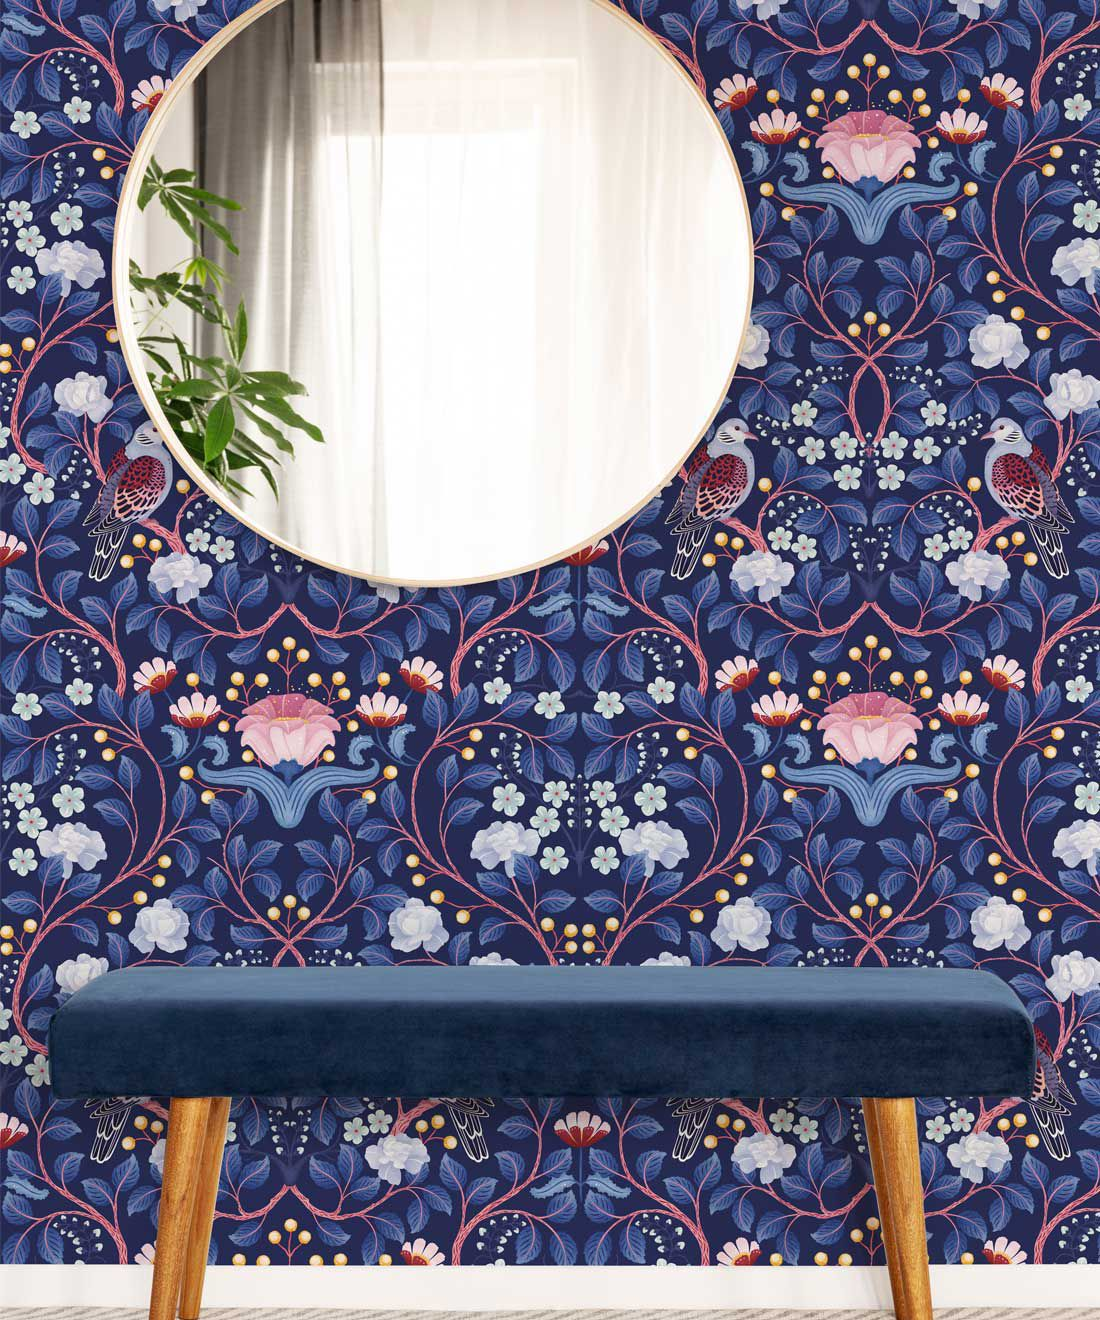 Turtle Doves Wallpaper • Bold Colorful Bird Wallpaper • Blueberry •Insitu